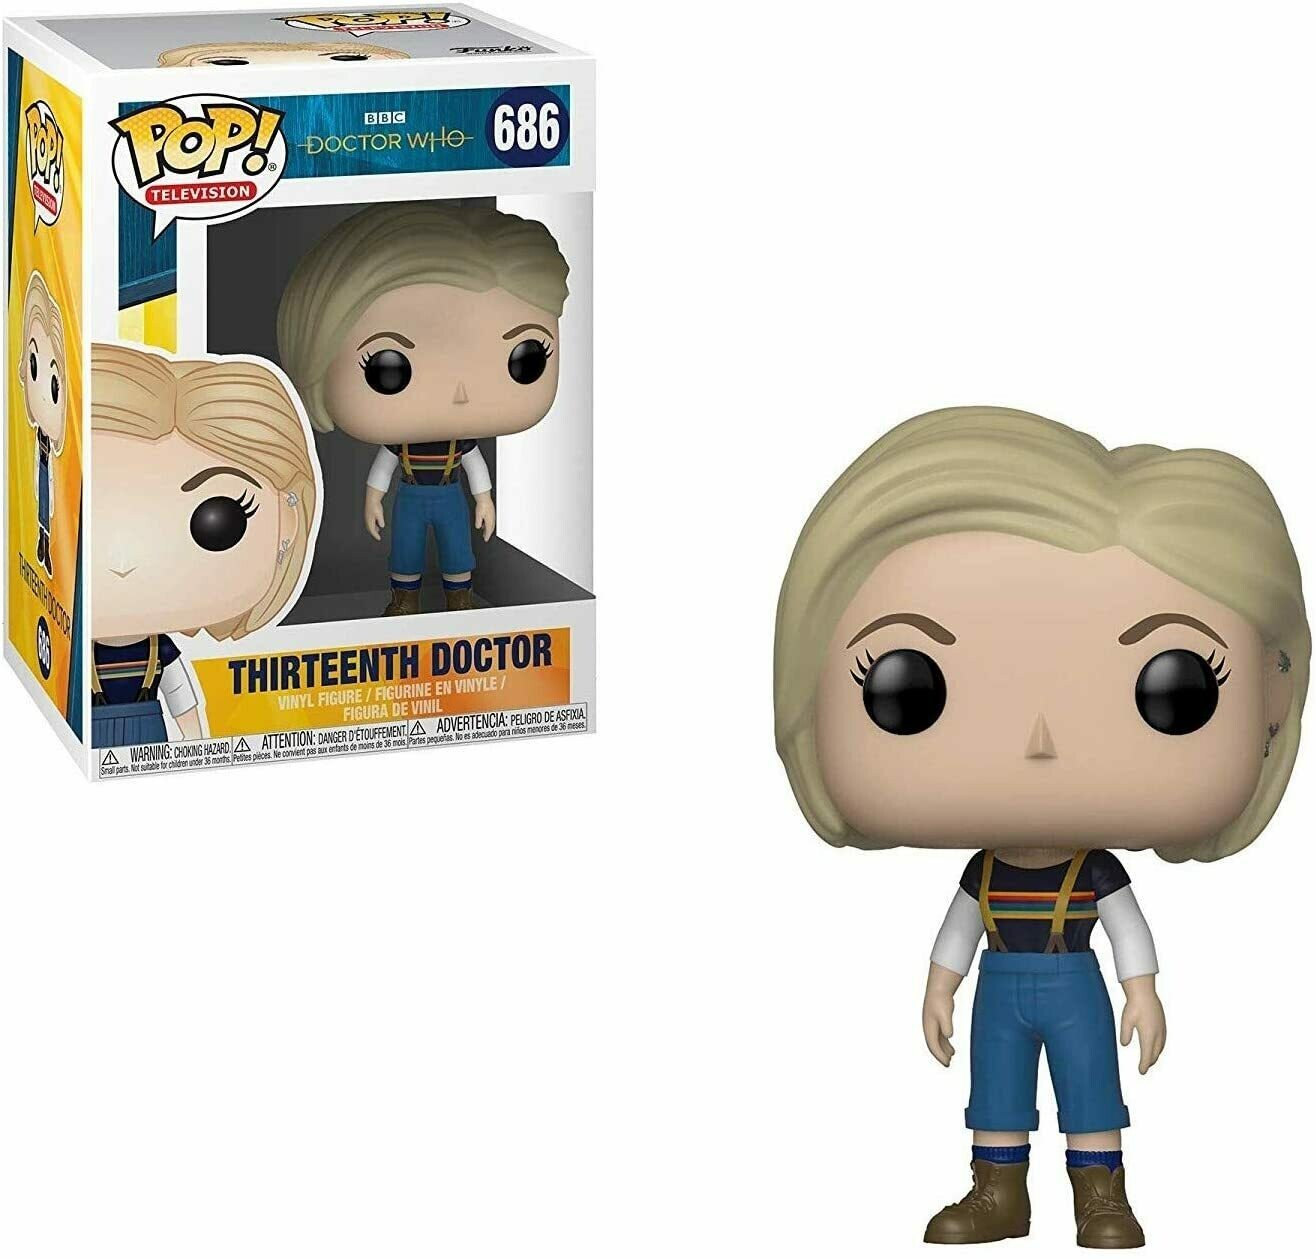 Funko Pop! Thirteenth Doctor Who